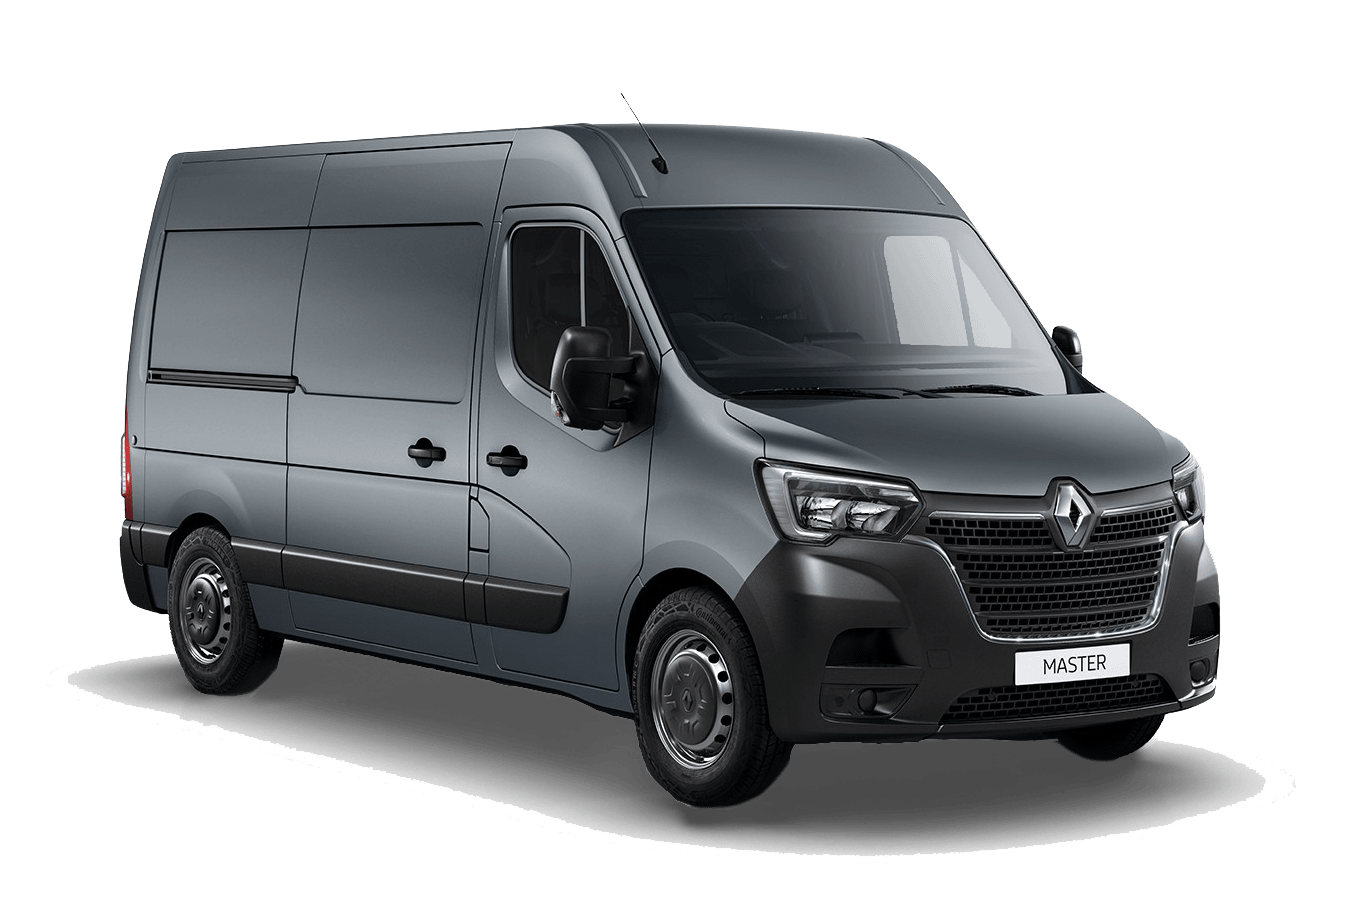 Renault Master Review For Sale Colours Specs Price Models Carsguide